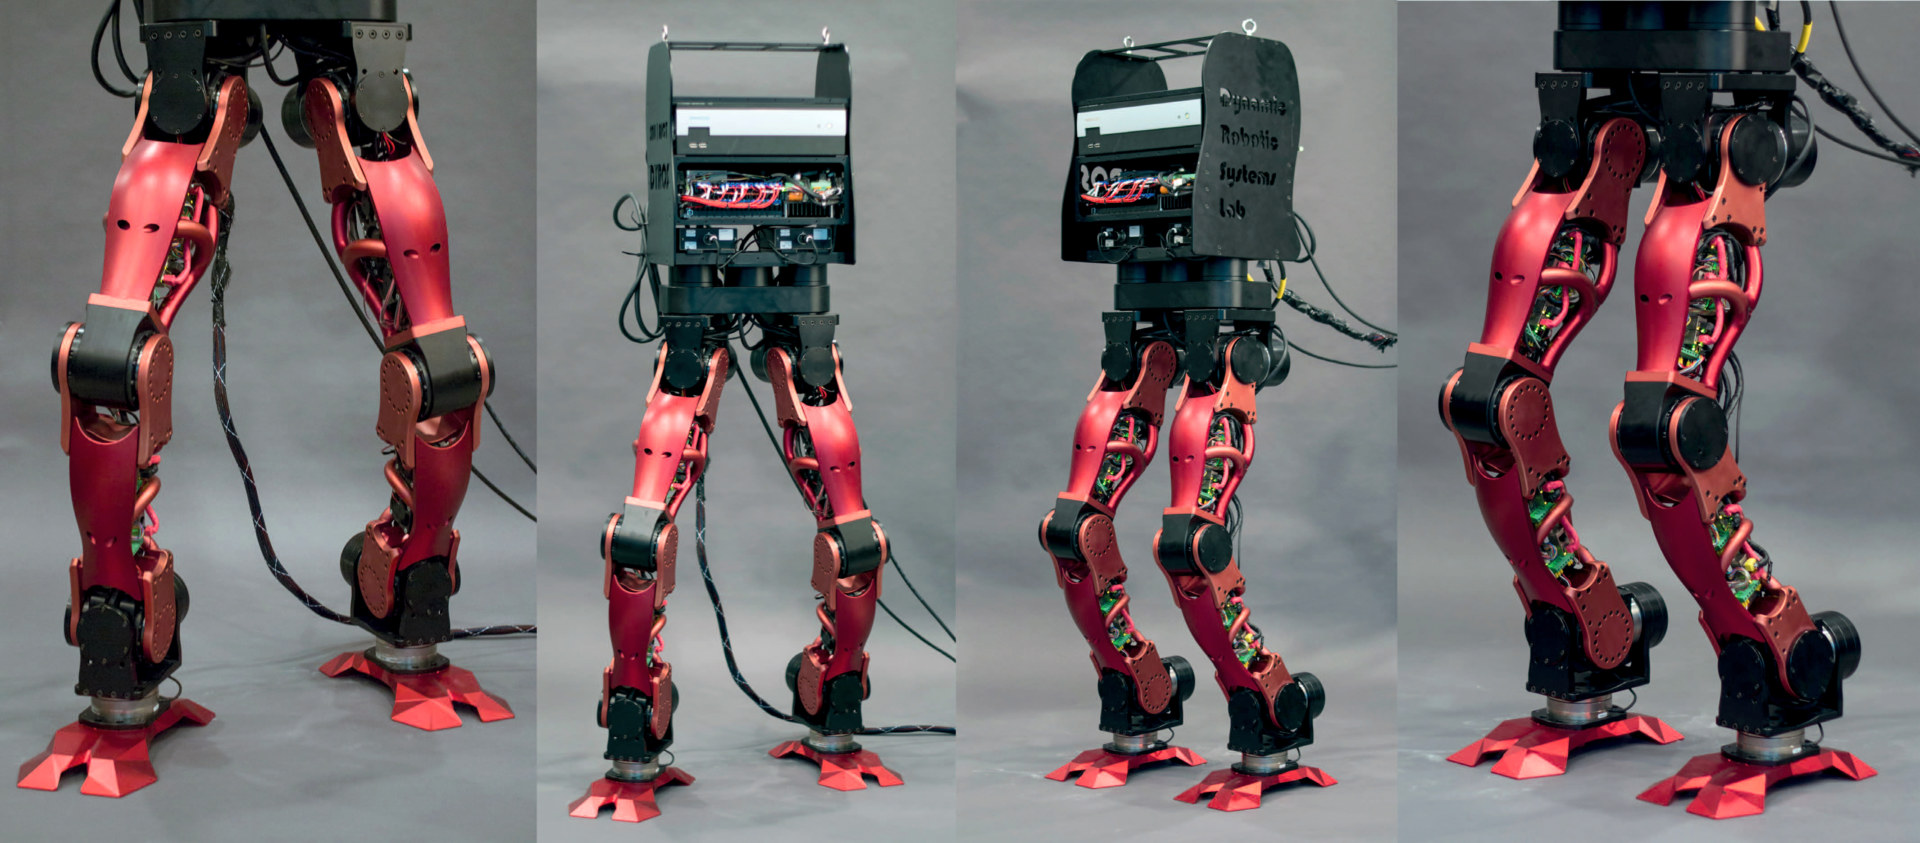 a robot industrial design project